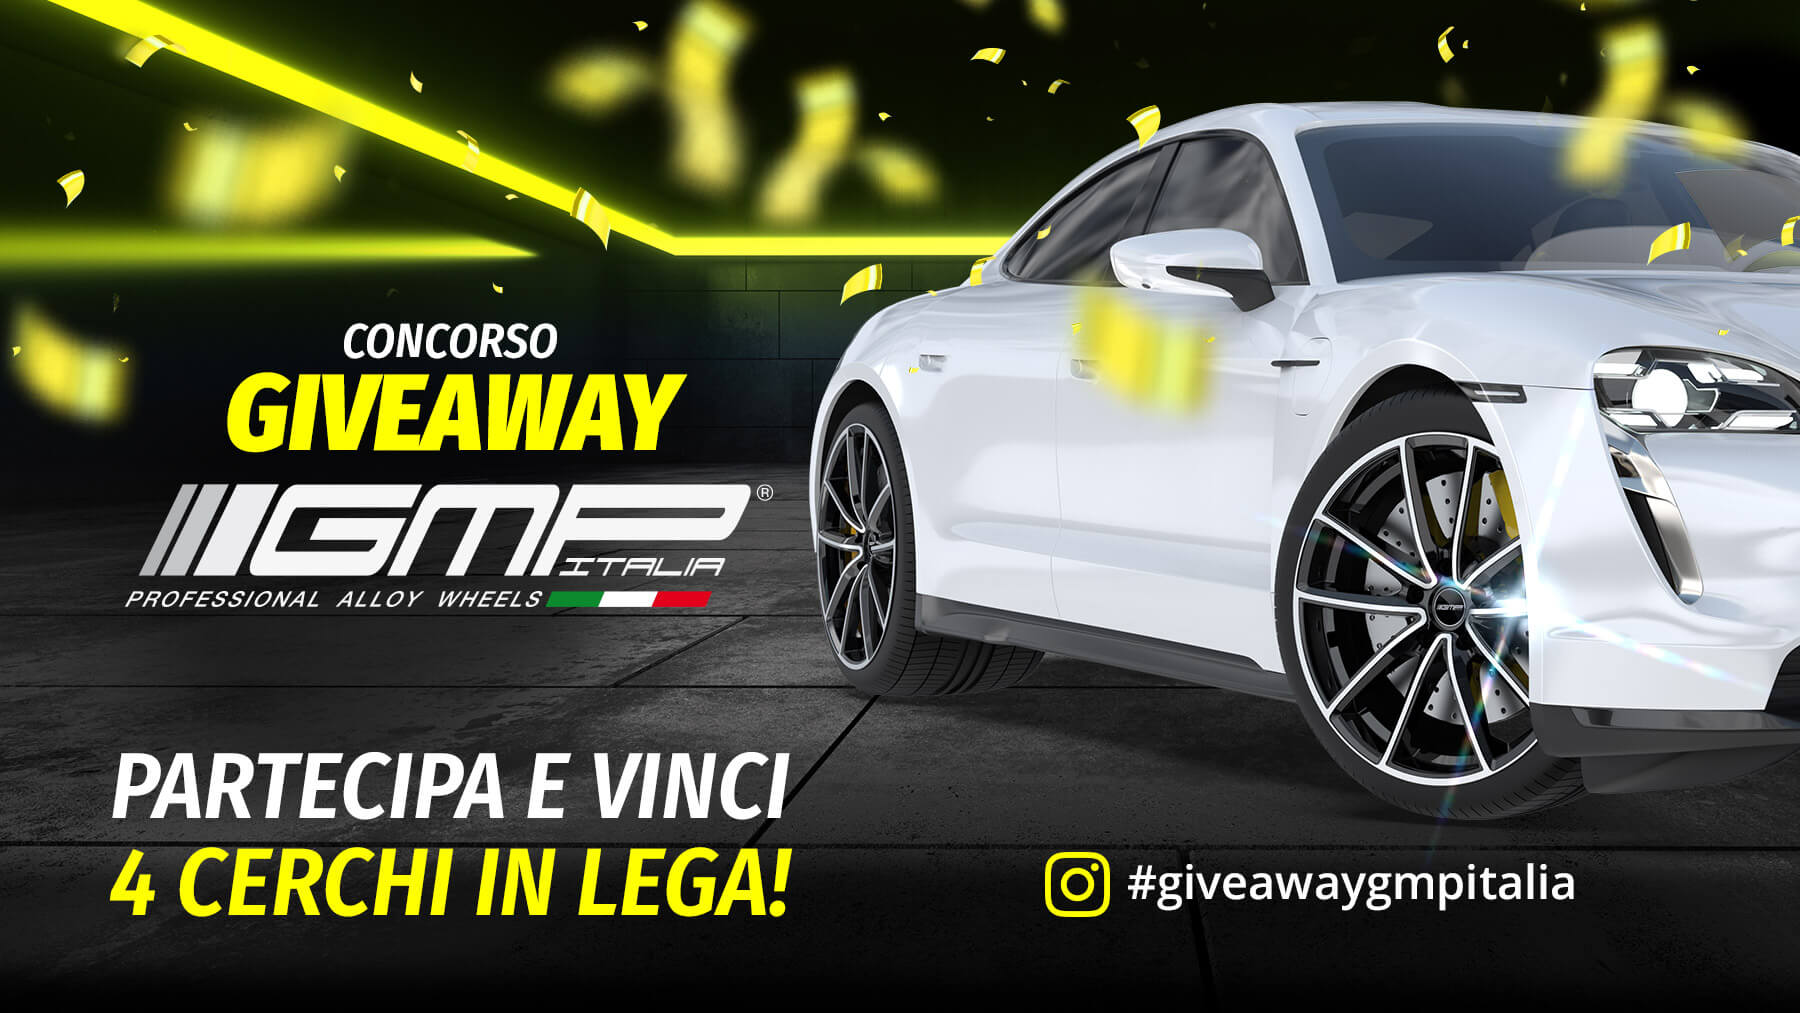 AAA… ATTENZIONE GIVEAWAY IN CORSO!